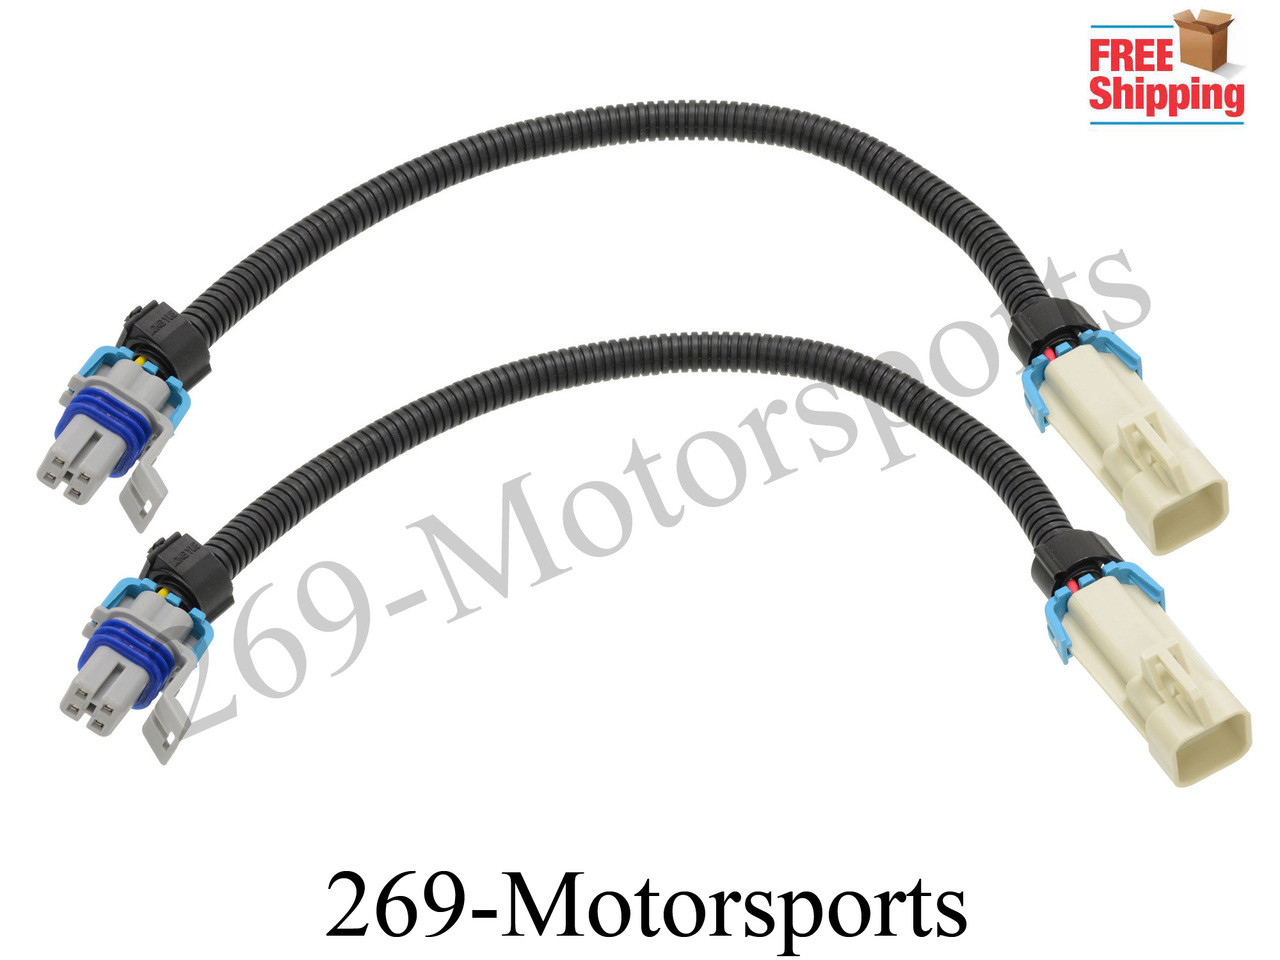 o2 oxygen sensor header extension wire harness fits ls1 ls2 04 06 gto cts v 12  [ 1280 x 960 Pixel ]